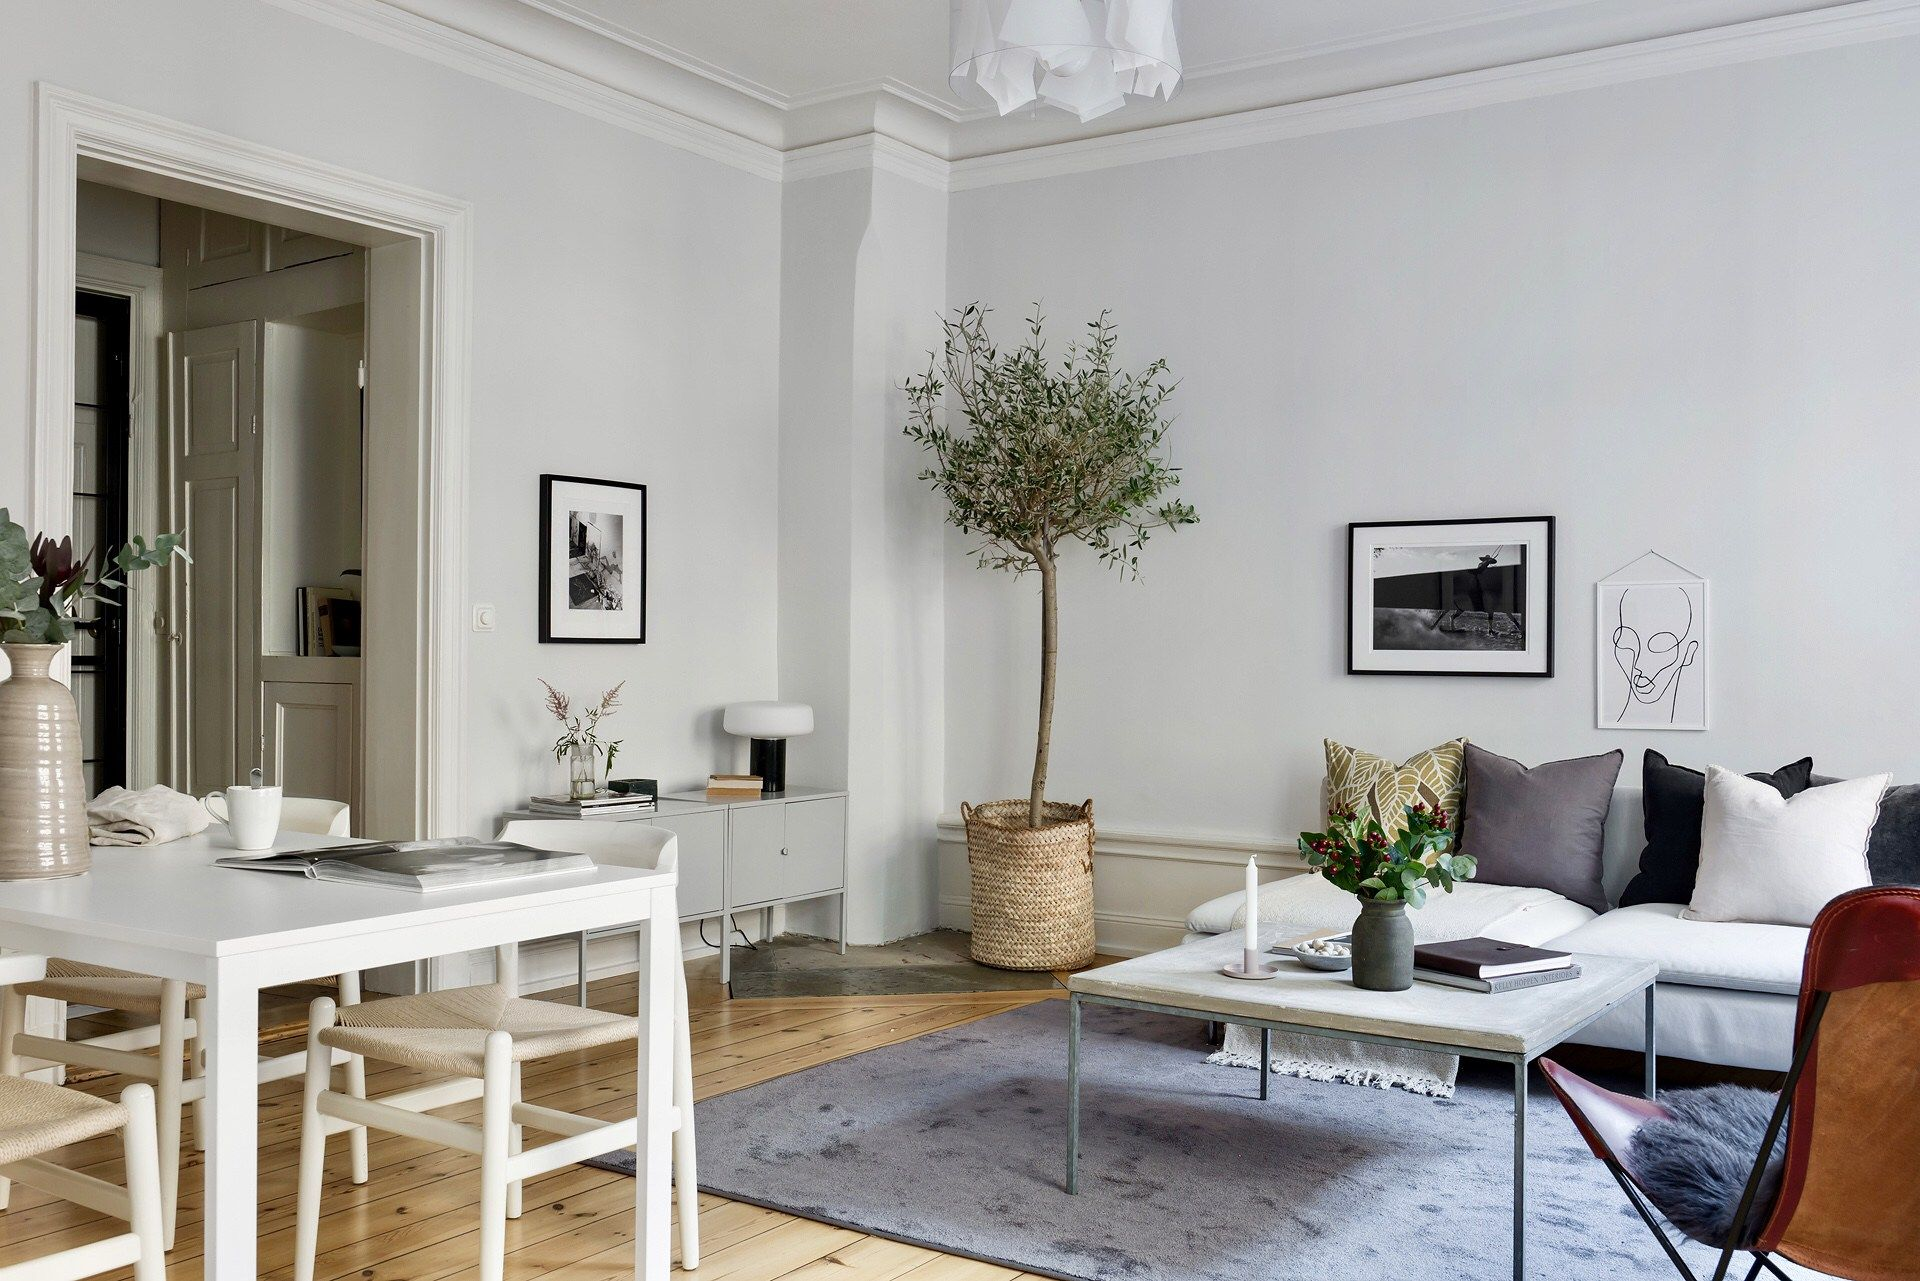 nicety nicety Sitting rooms Pinterest